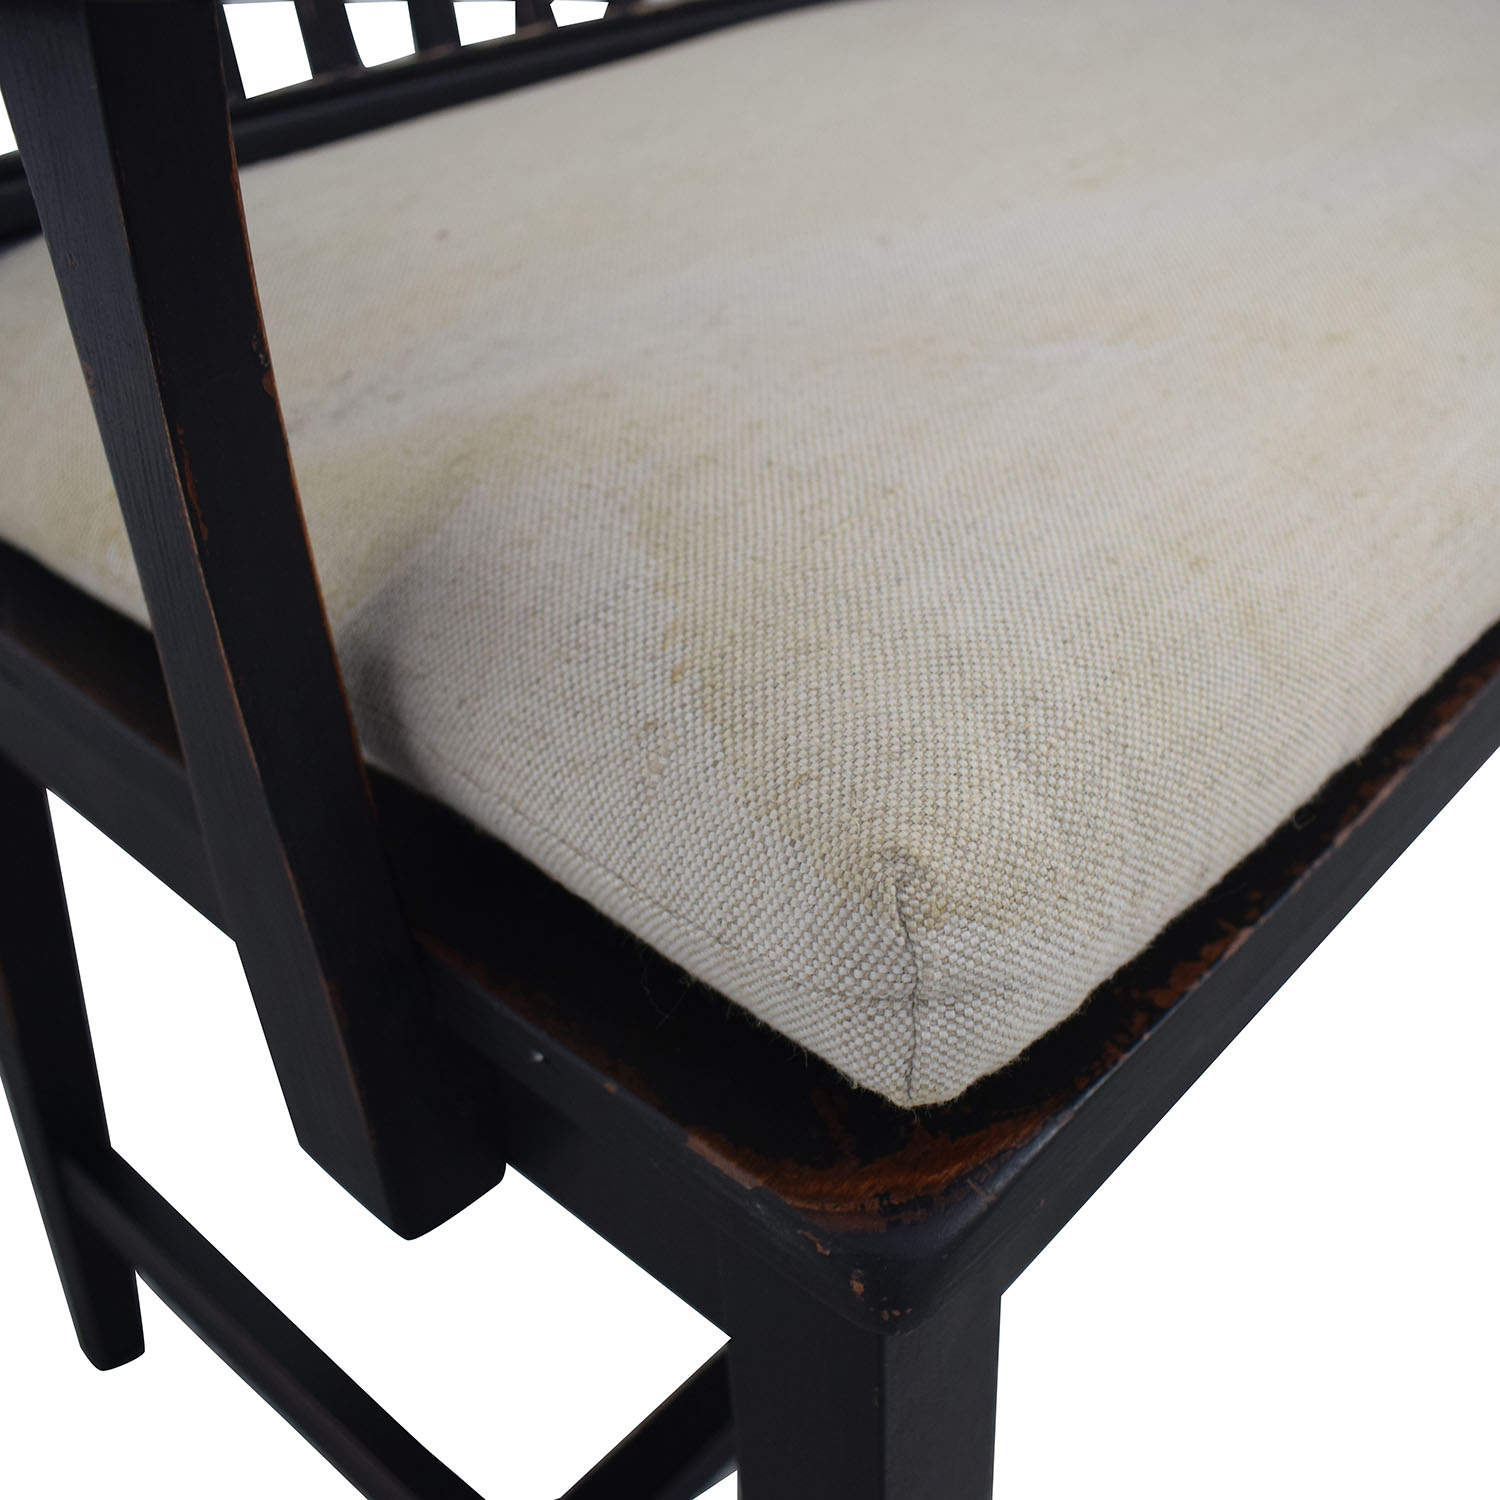 Crate & Barrel Crate & Barrel Wood Bench with Cushion used